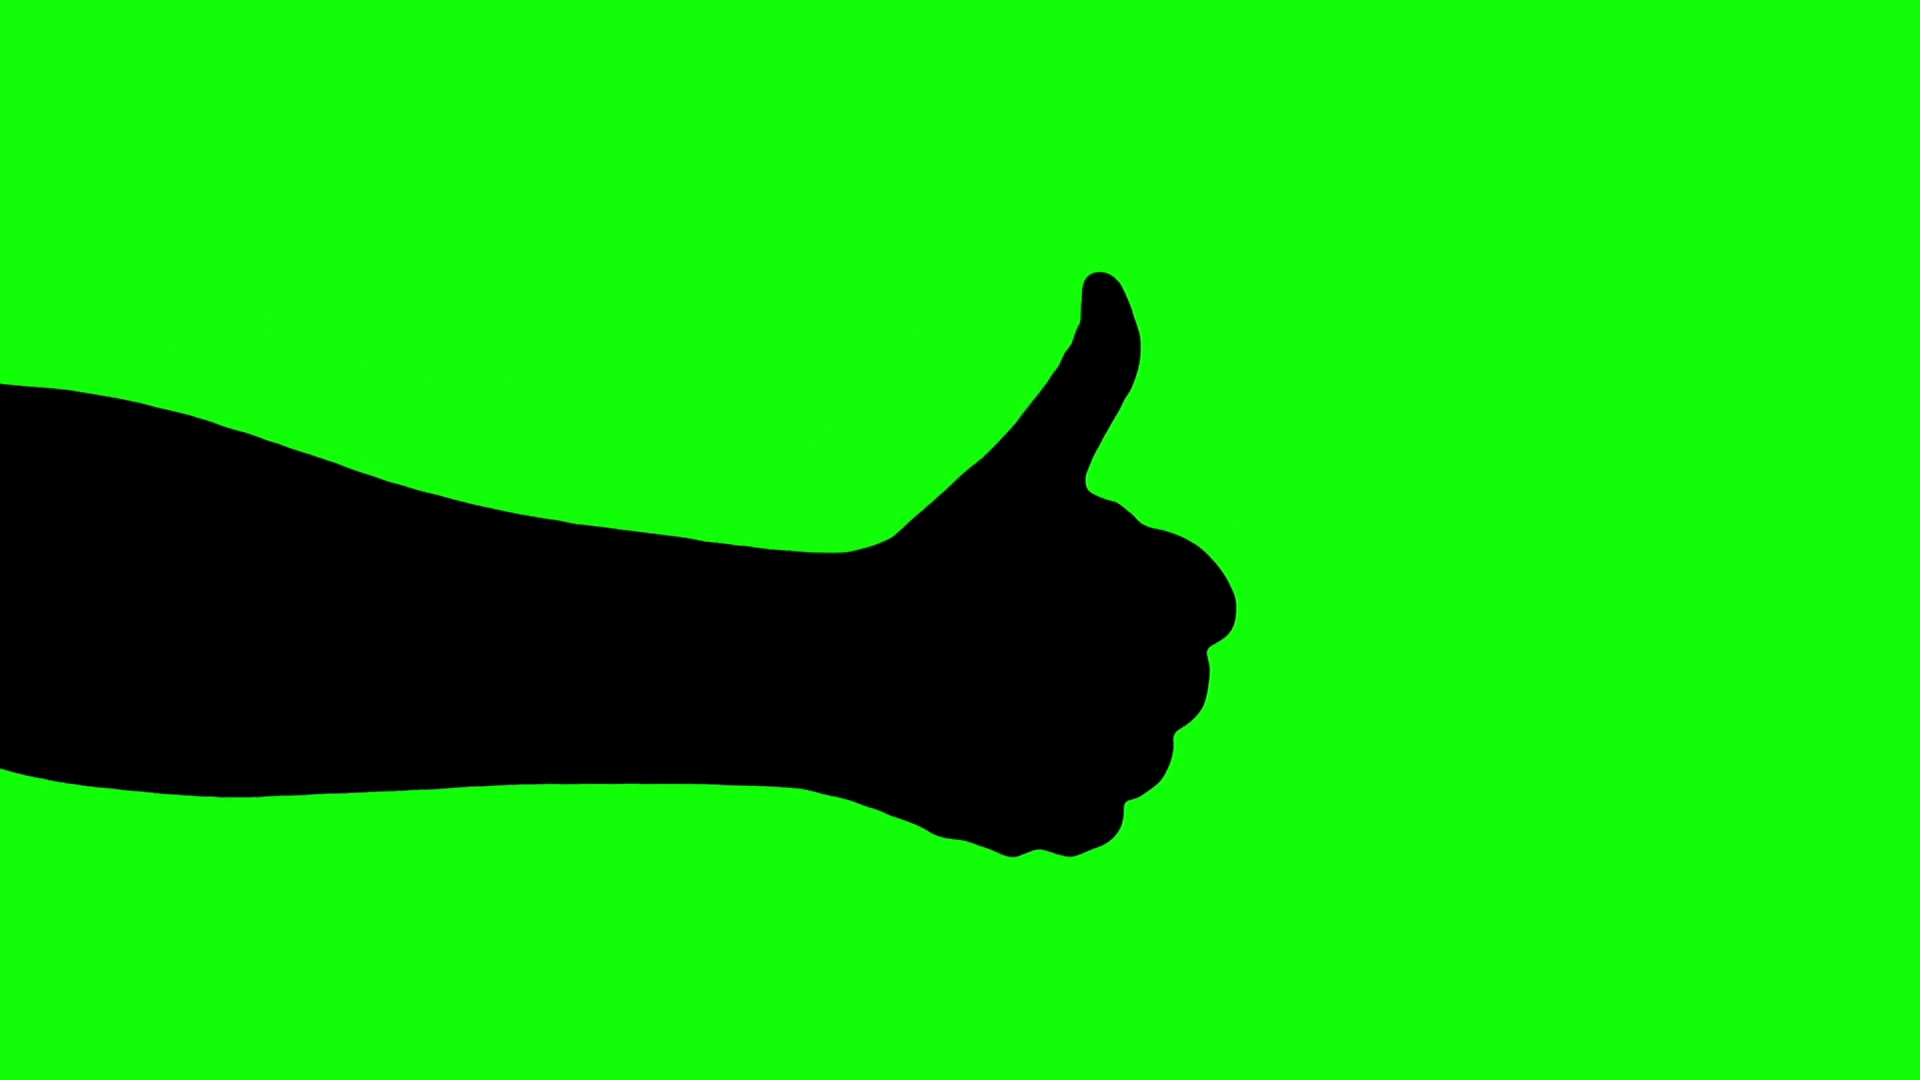 1920x1080 Male Hand Thumb Up Or Like Sign Silhouette Isolated Green Screen